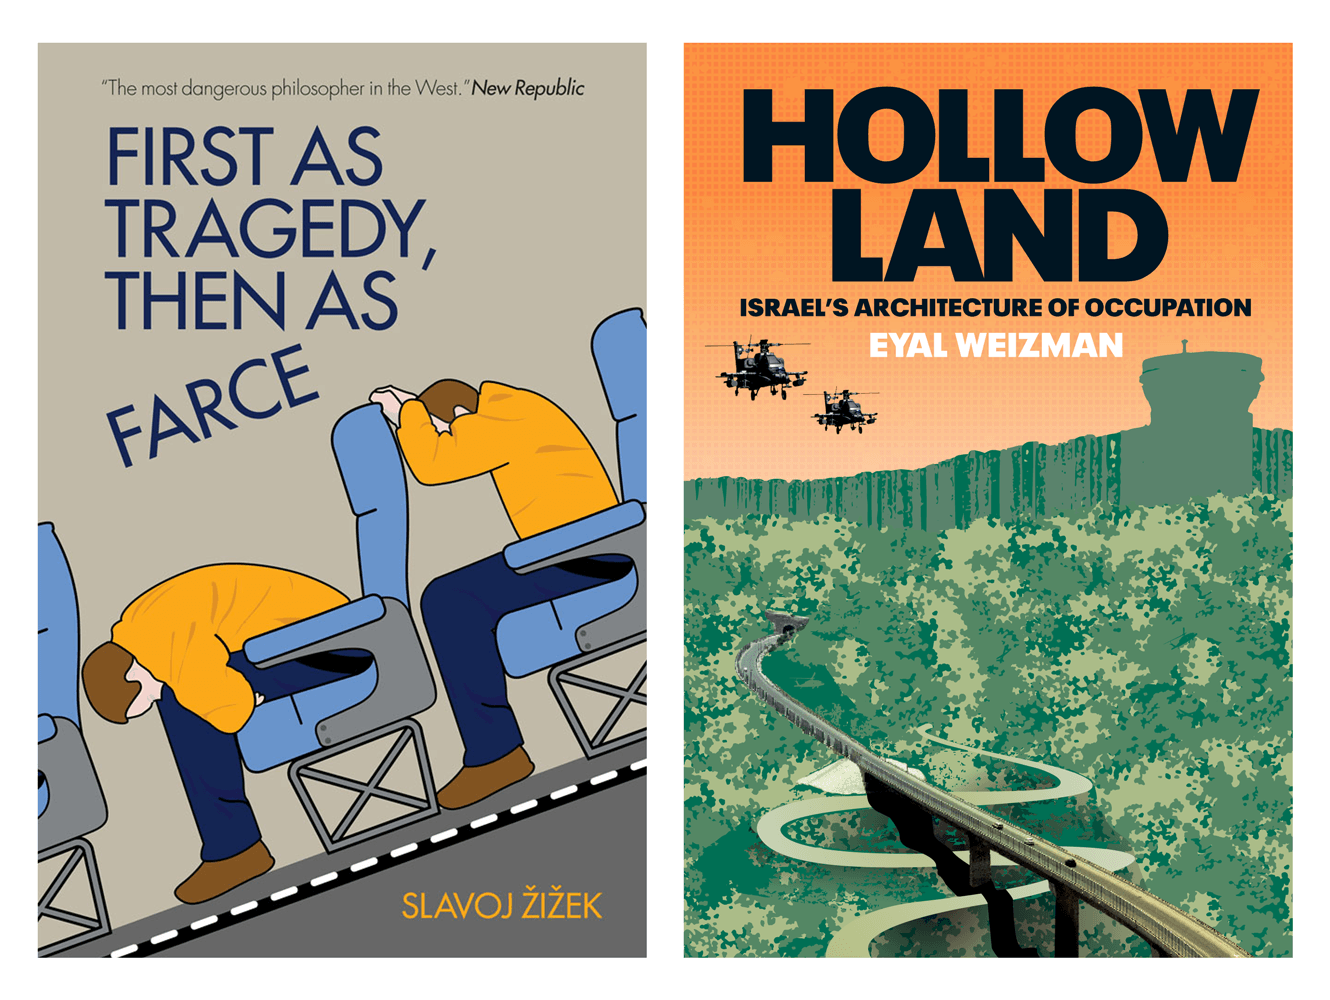 Book Cover Designs For First As Tragedy Then As Farce And Hollow Land By Verso Books. Designed By &&& Creative